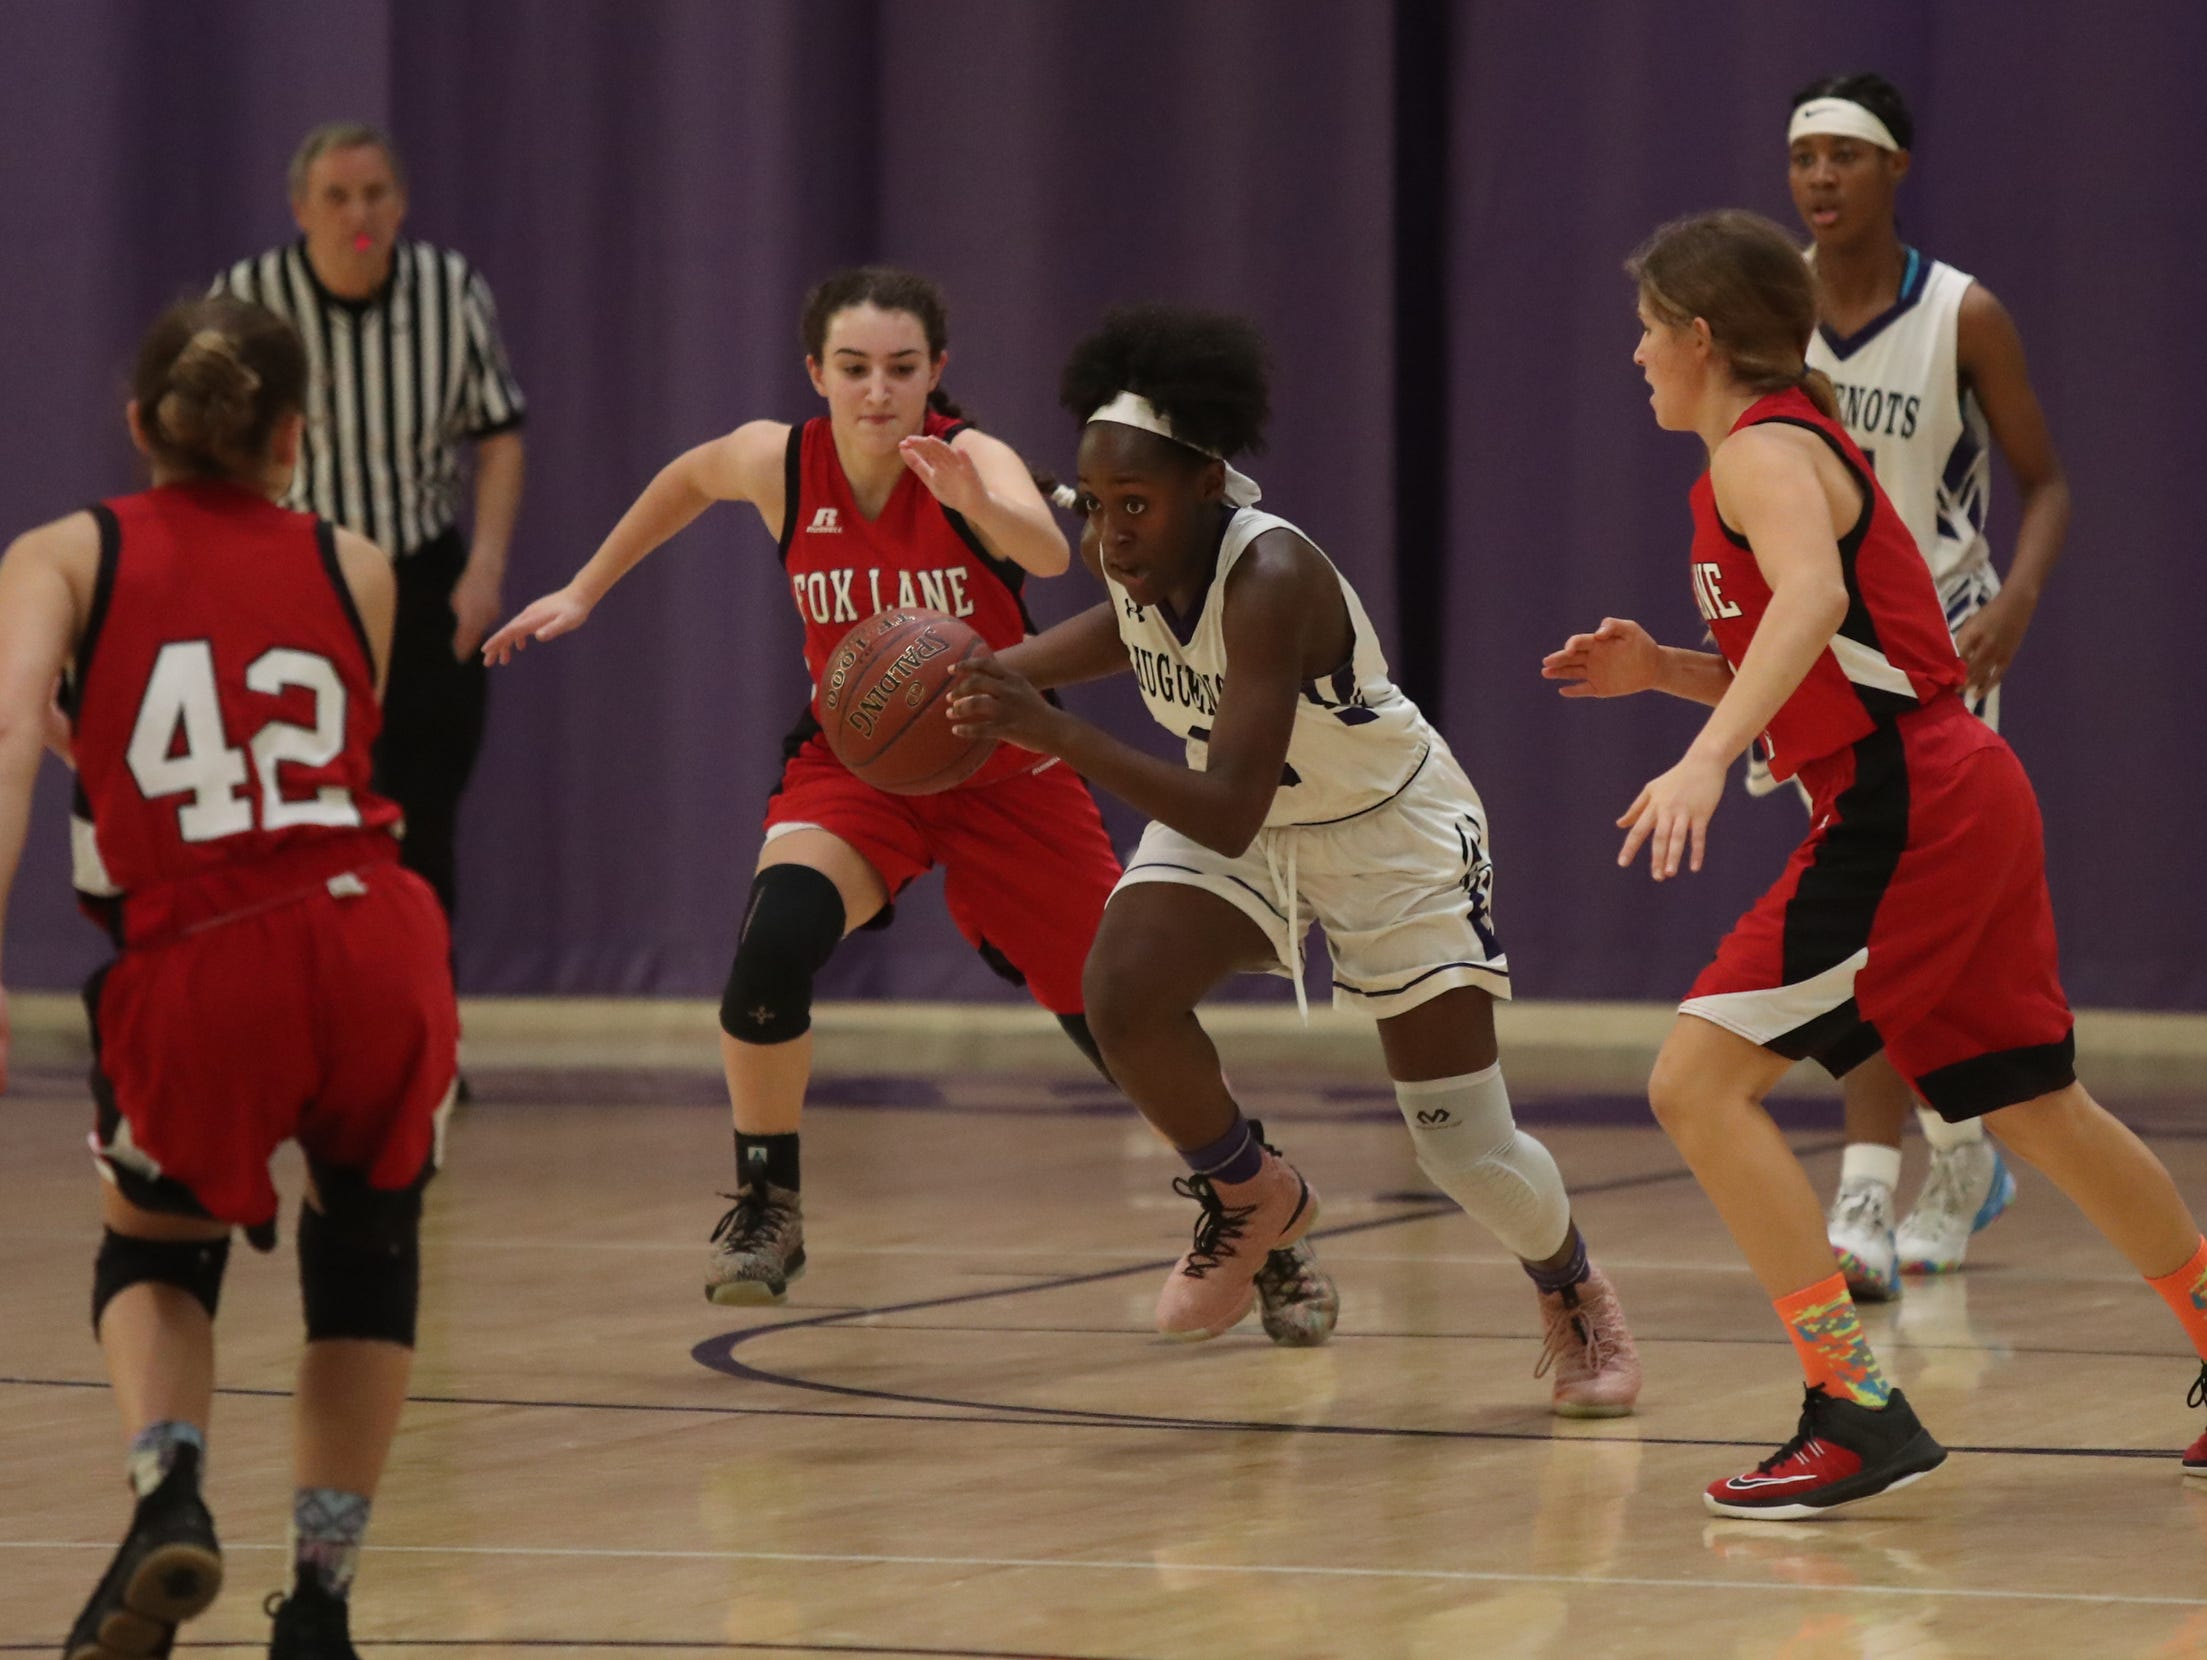 New Rochelle's Nia Bailey (2) pulls in a loose ball in the class AA girls basketball outbracket game against Fox Lane at New Rochelle High School in New Rochelle on Saturday, February 16, 2019.